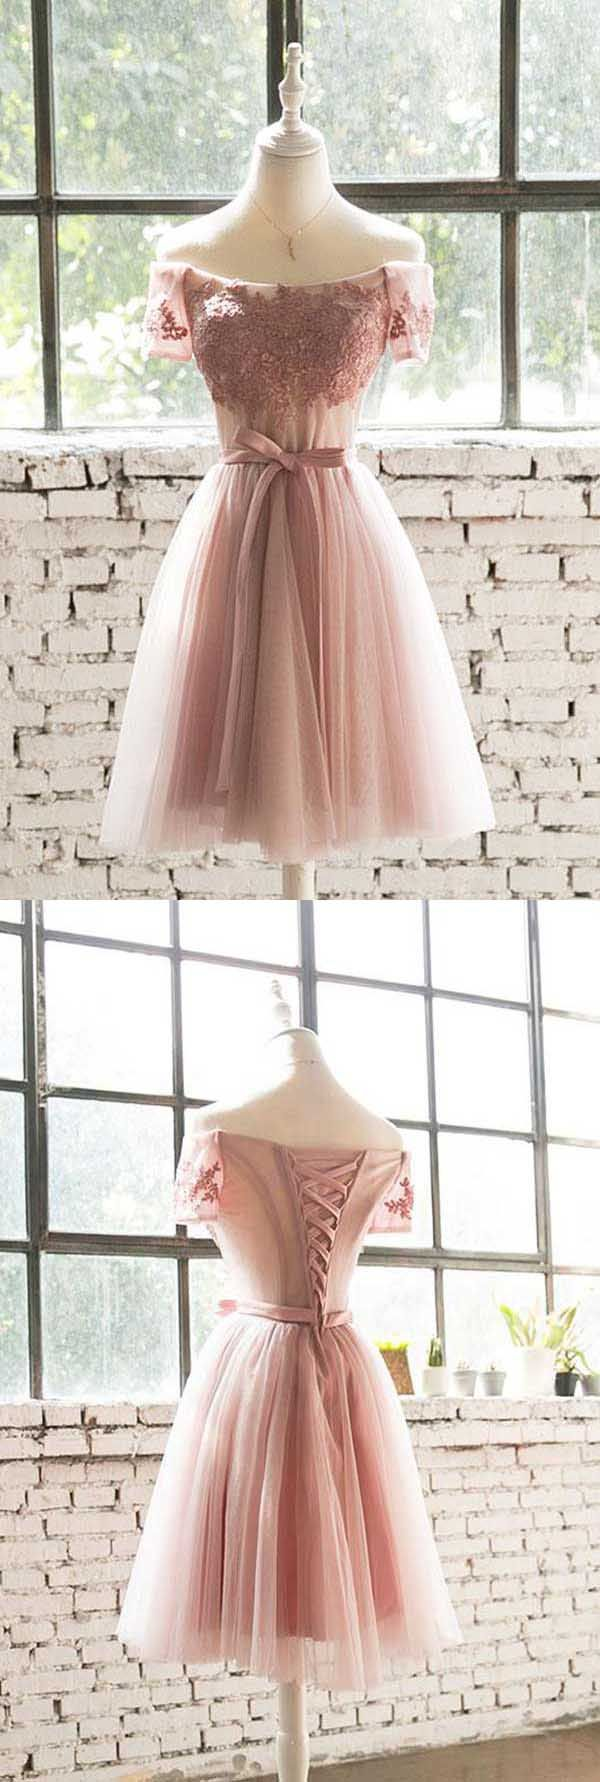 Off the shoulder pink lace tulle short prom dress homecoming dress